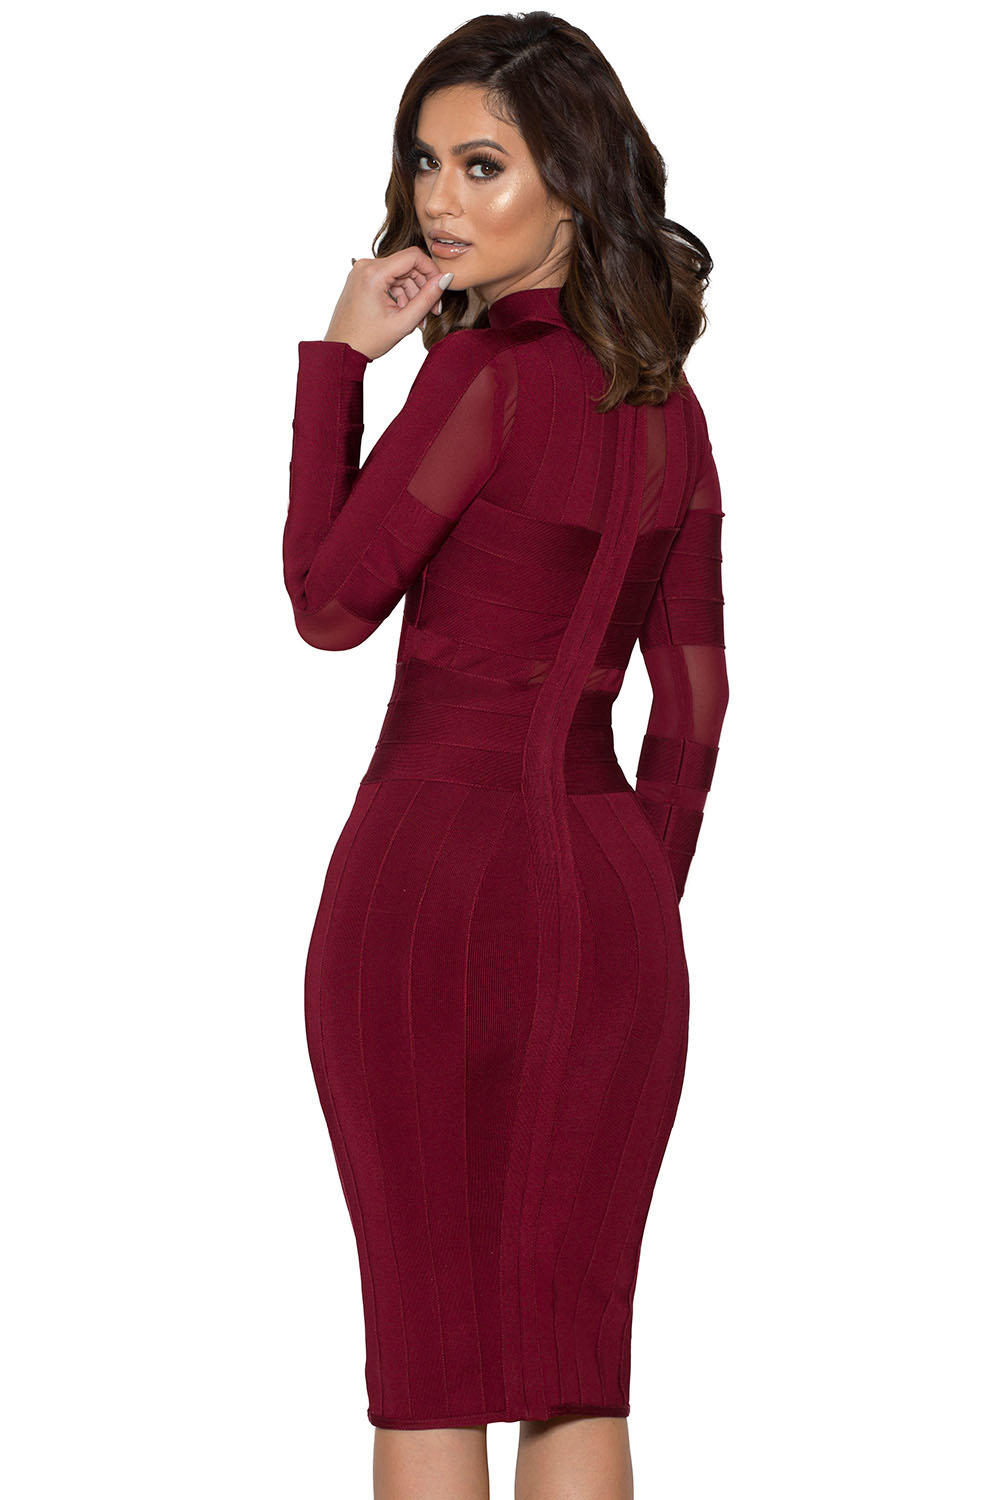 5a1331b4973 Long Sleeve Sexy Dresses – Fashion dresses